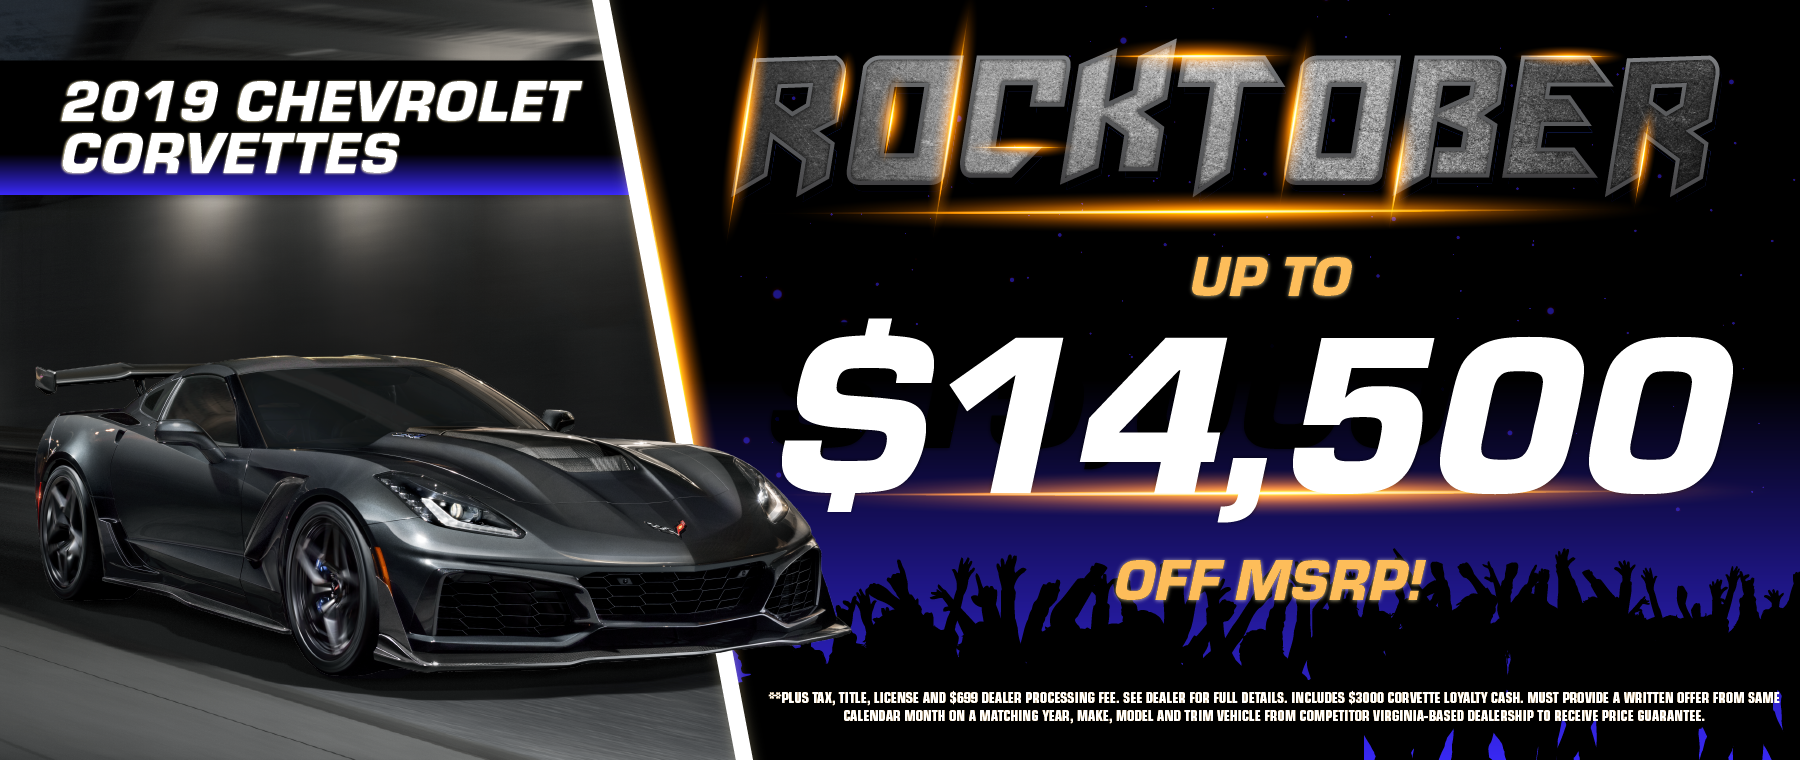 2019 Chevrolet Corvettes with up to $14,500 off!